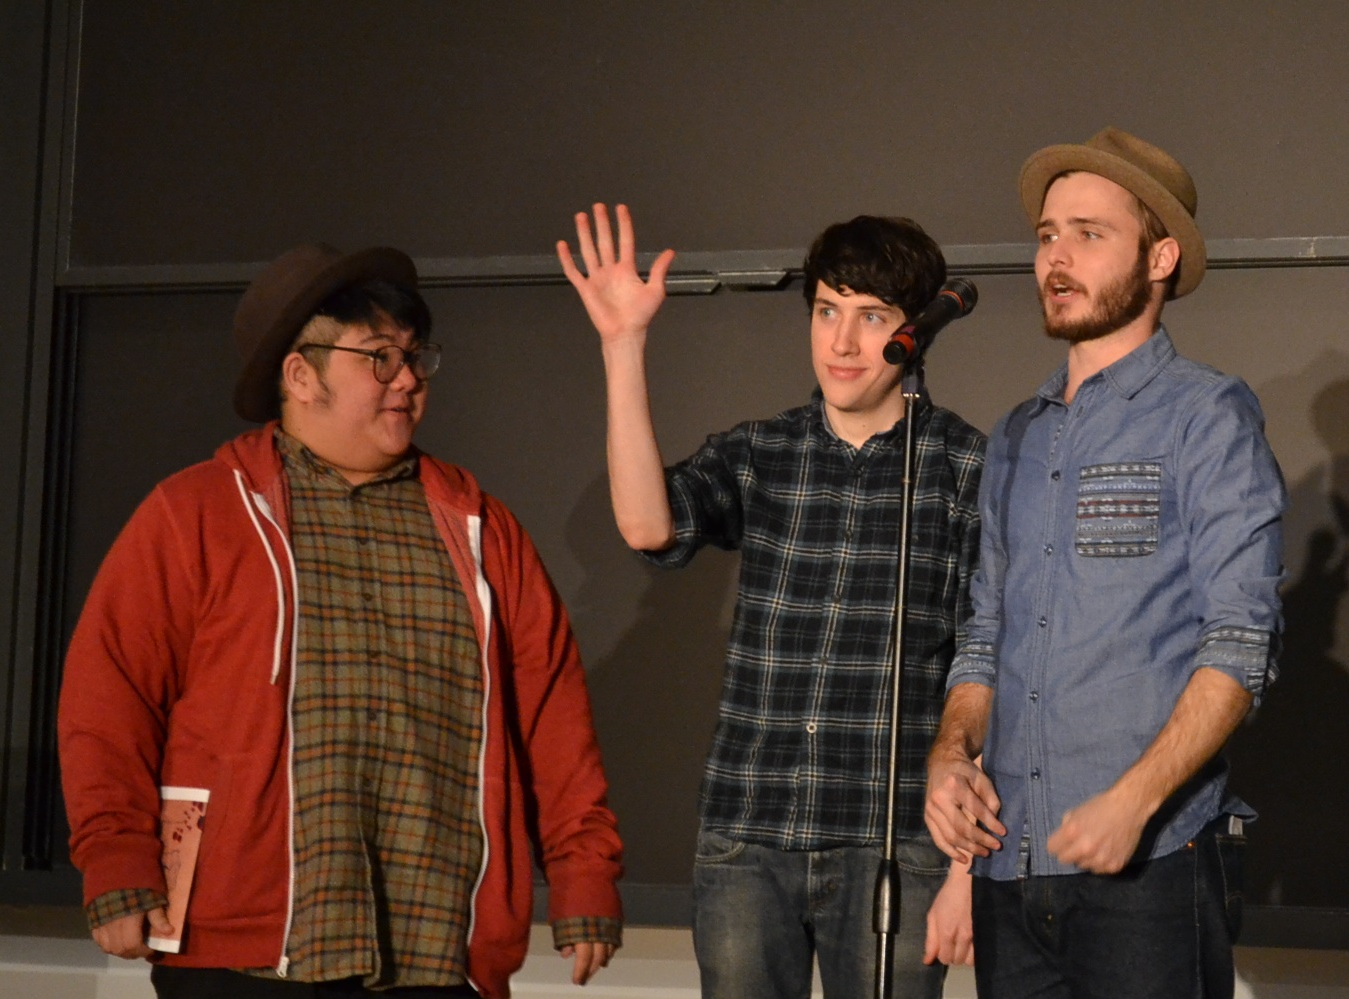 From left: Hieu Nguyen, Dylan Garity, and Neil Hilborn of The Good News Poetry Tour | Photo by Cecilia Weddell